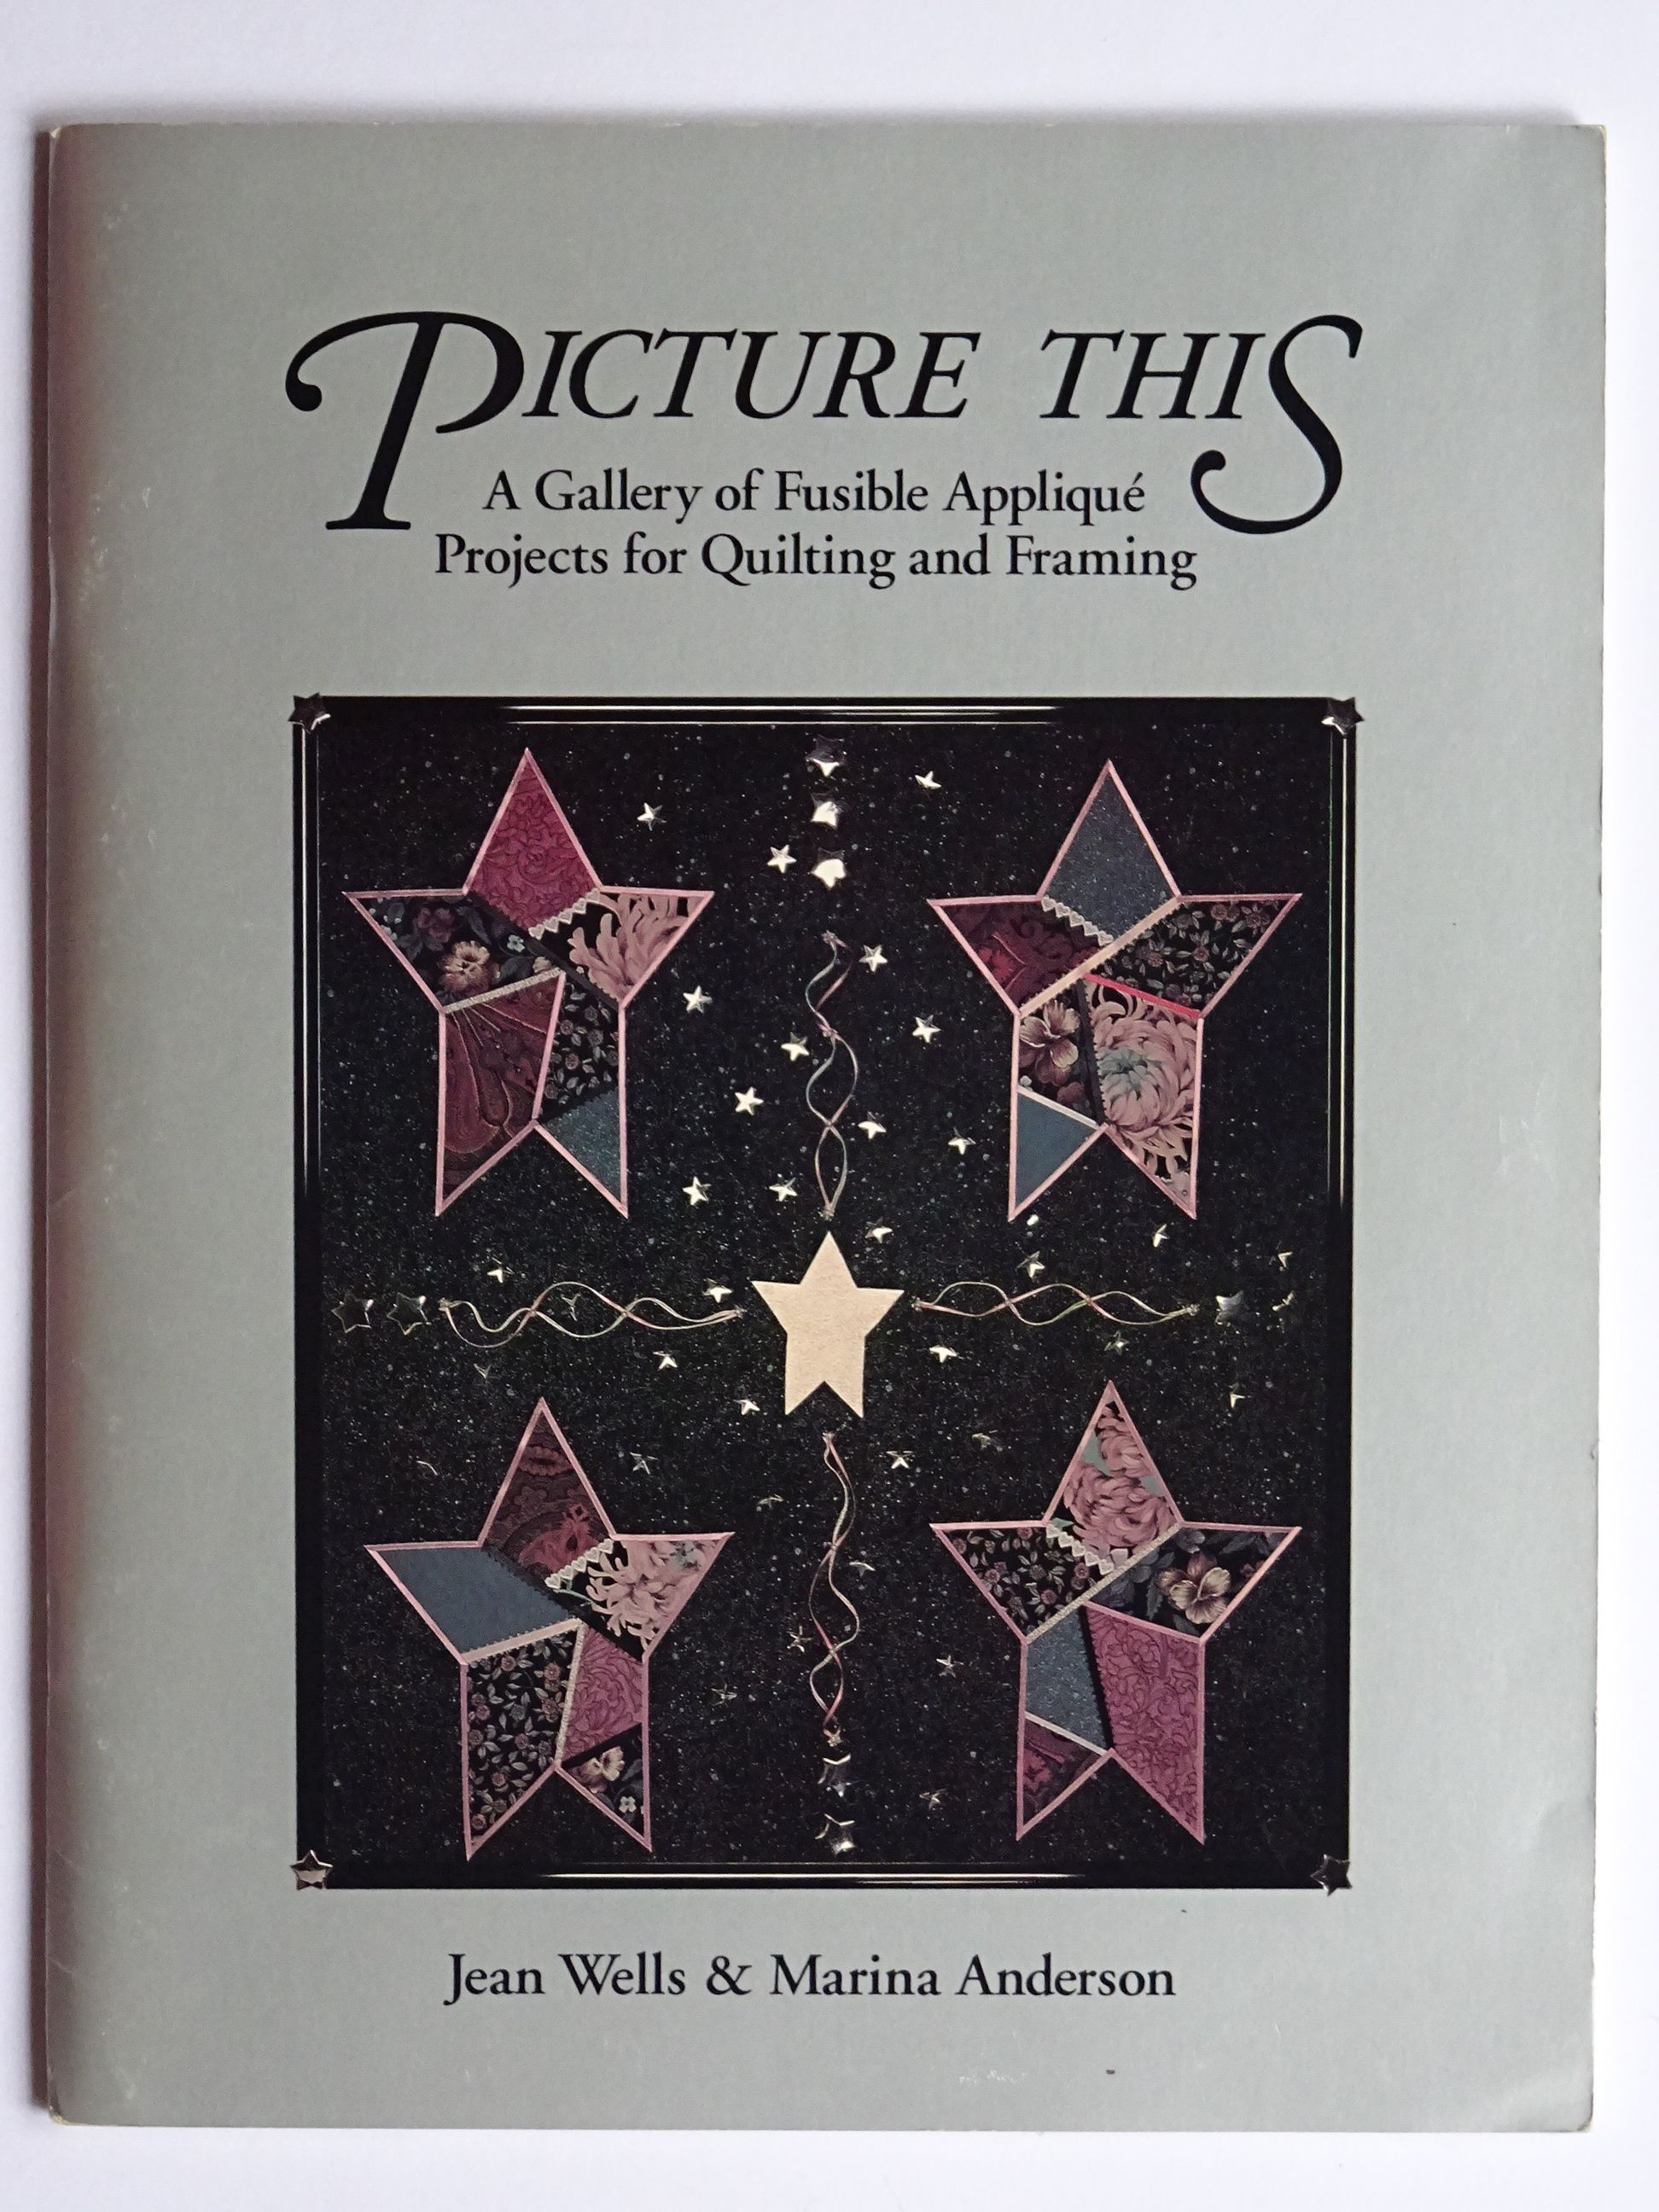 Wells, Jean & Anderson, Marina - Picture This. A Gallery of Fusible Applique